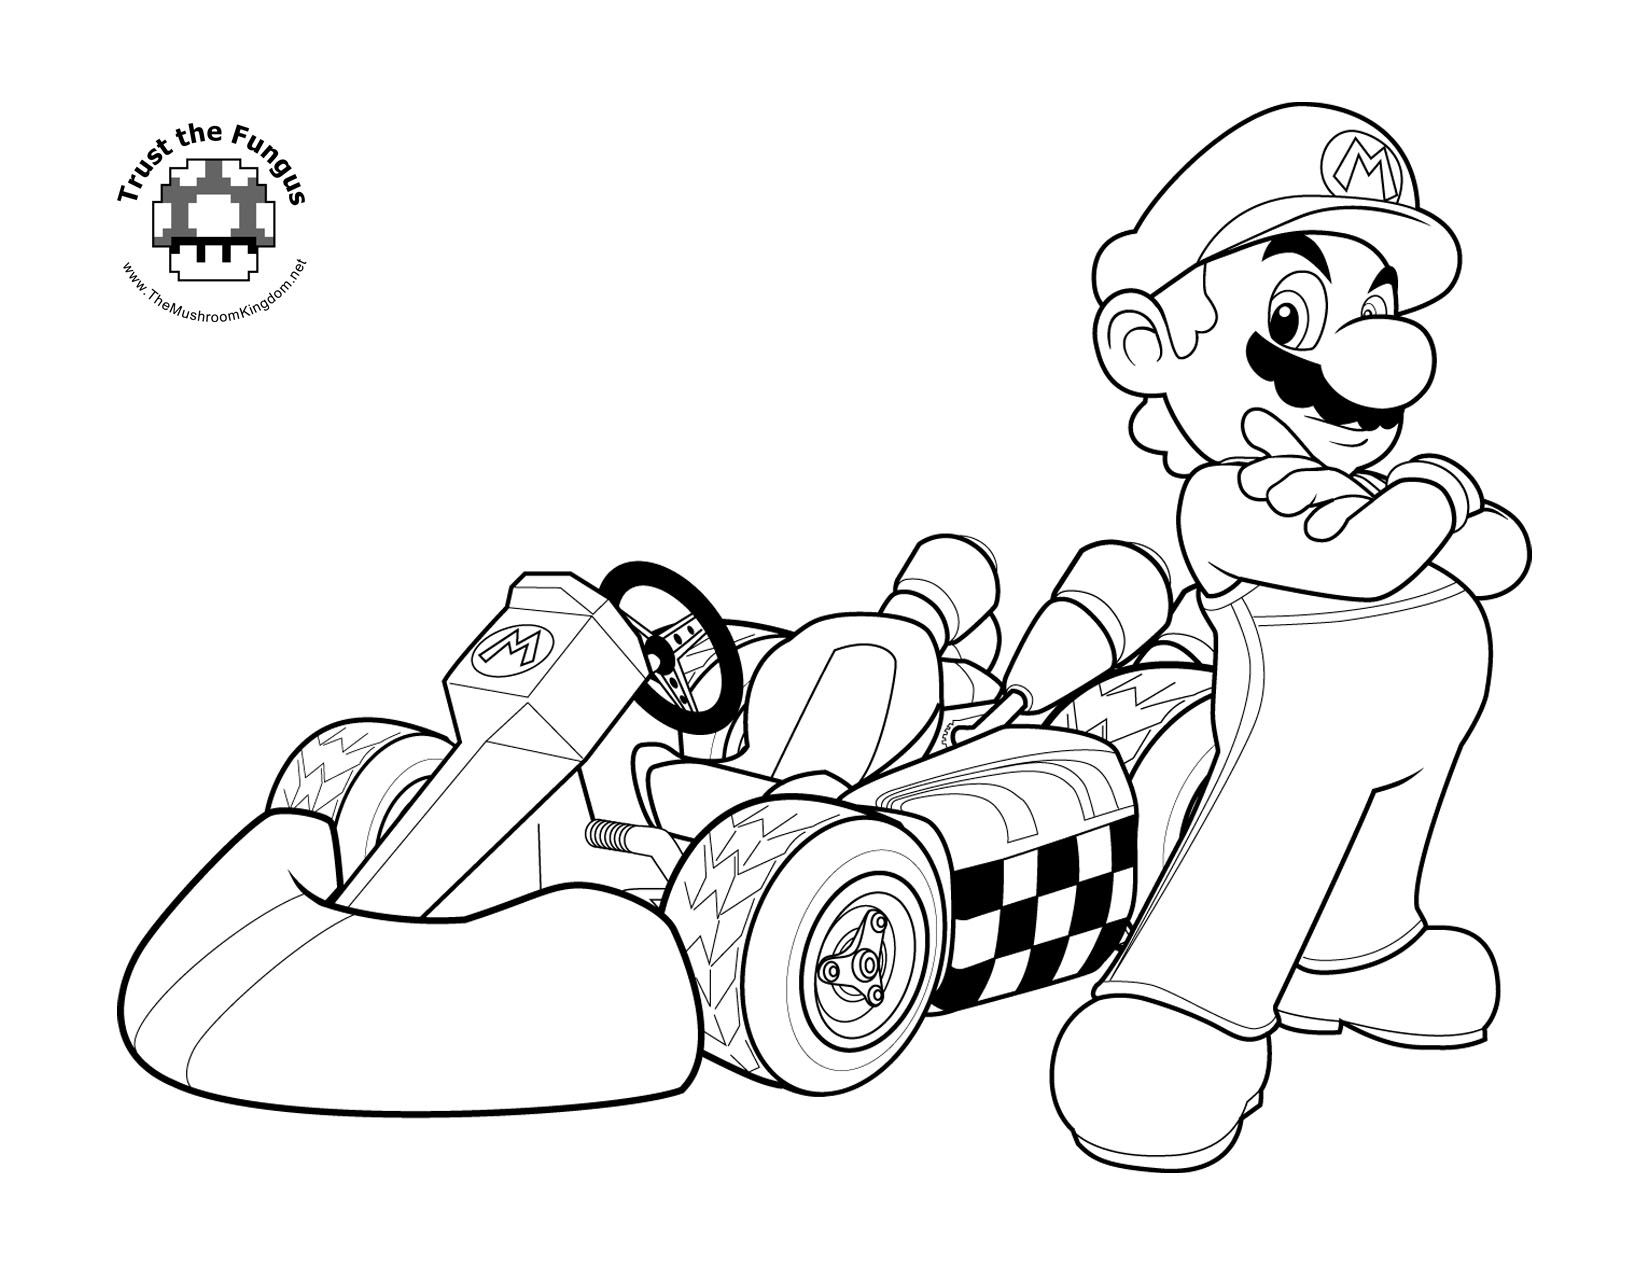 mario cart wii coloring pages - photo#1